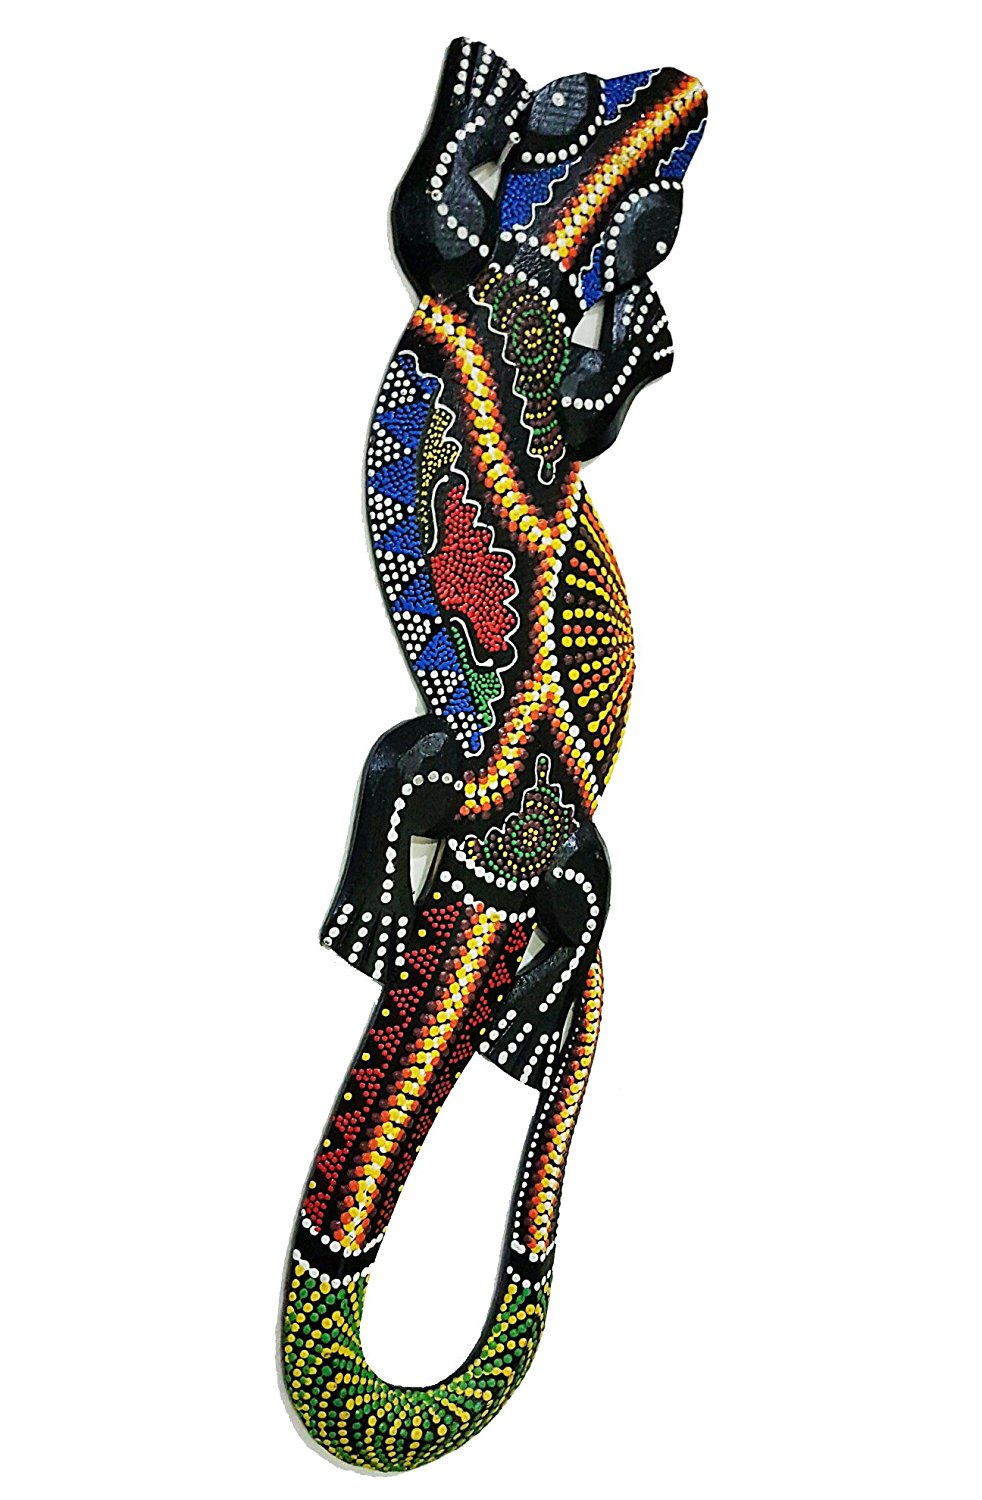 Buy Dot Painted Gecko Wooden Wall Hanging Lizard (aboriginal Art) In Within Most Popular Gecko Wall Decor (View 15 of 20)